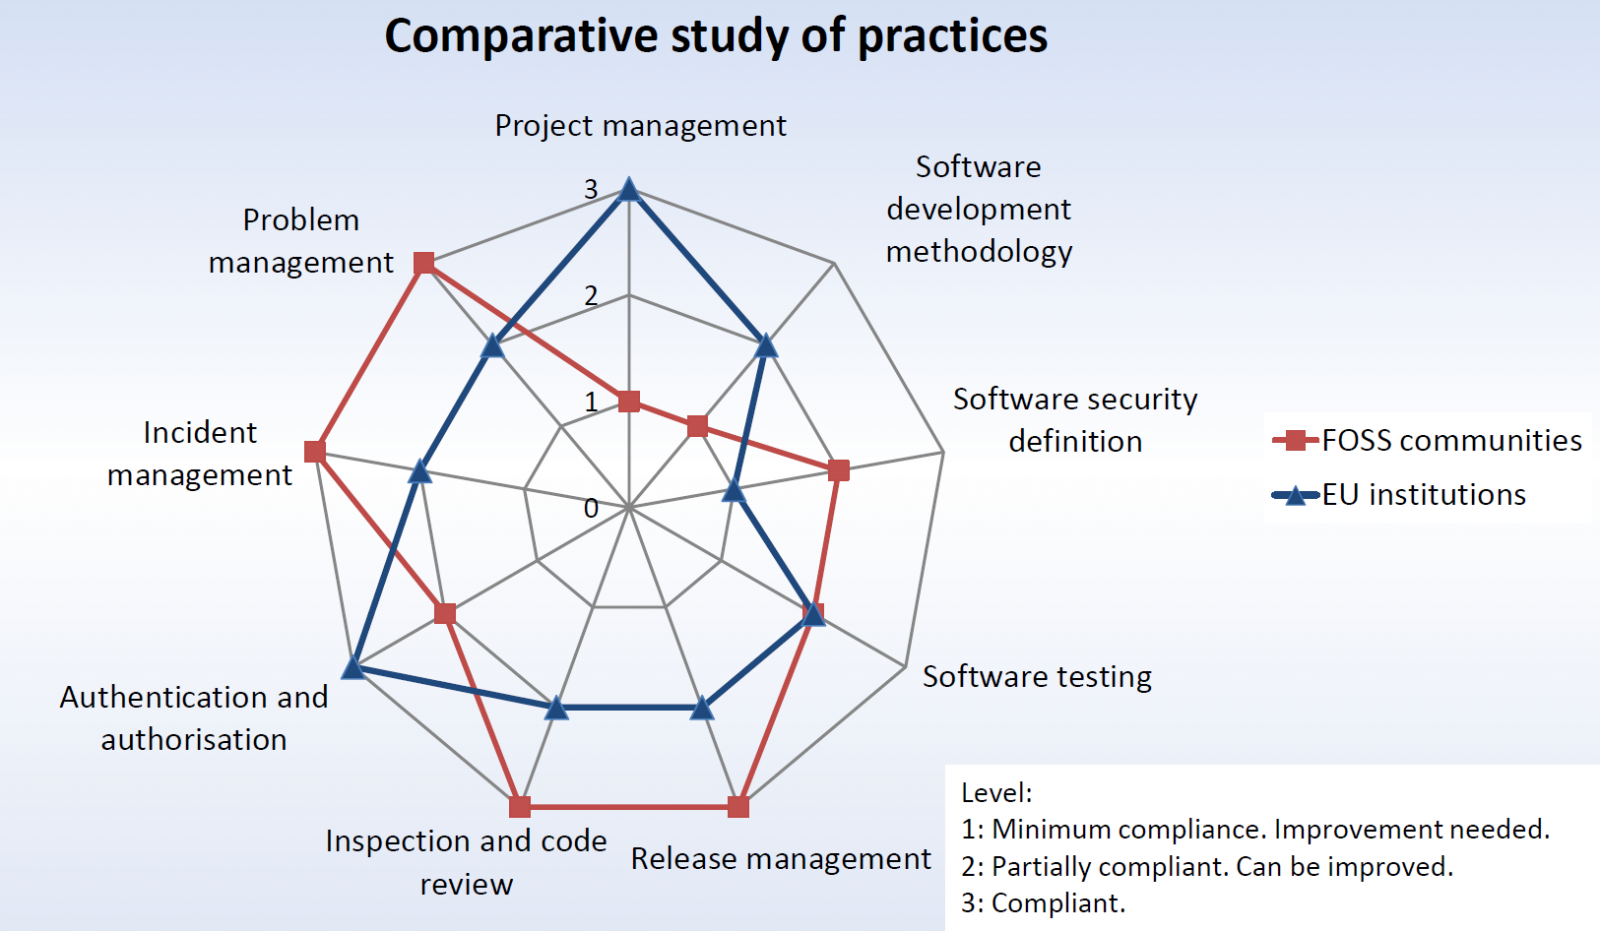 A chart comparing coding practices of EC/EP software development and free and open source groups